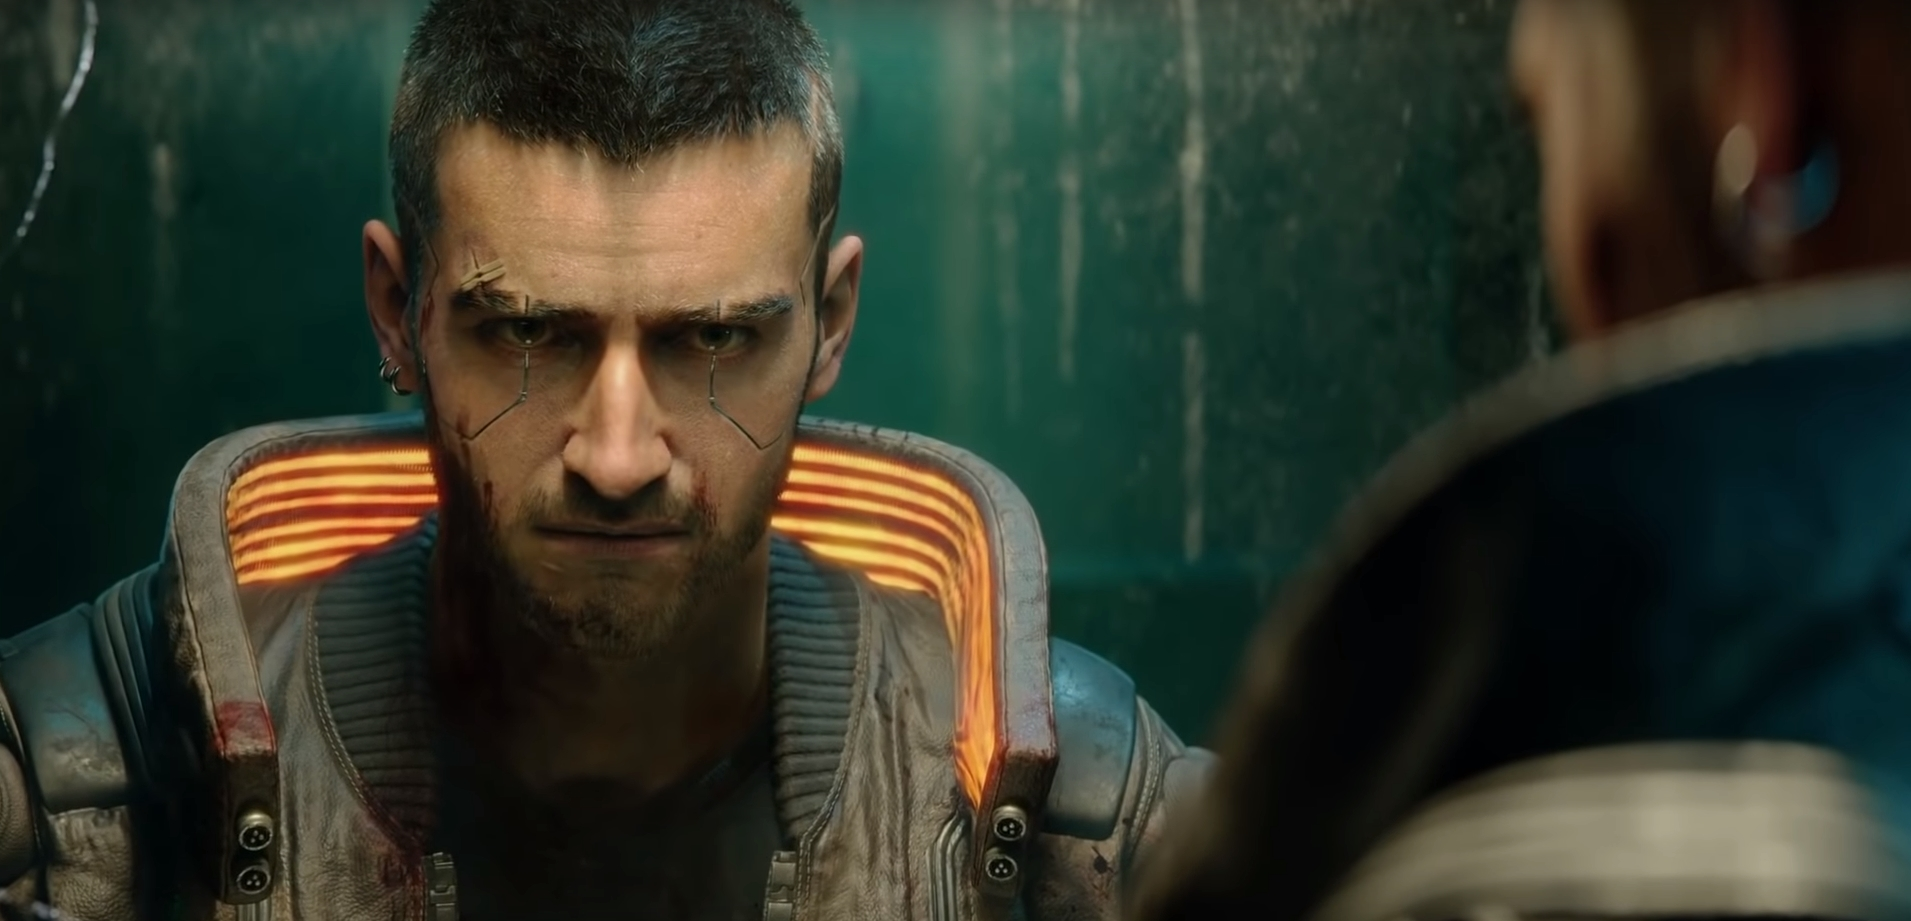 CD Projekt Red Have Delayed the Release of Cyberpunk 2077 Until September 17th, 2020